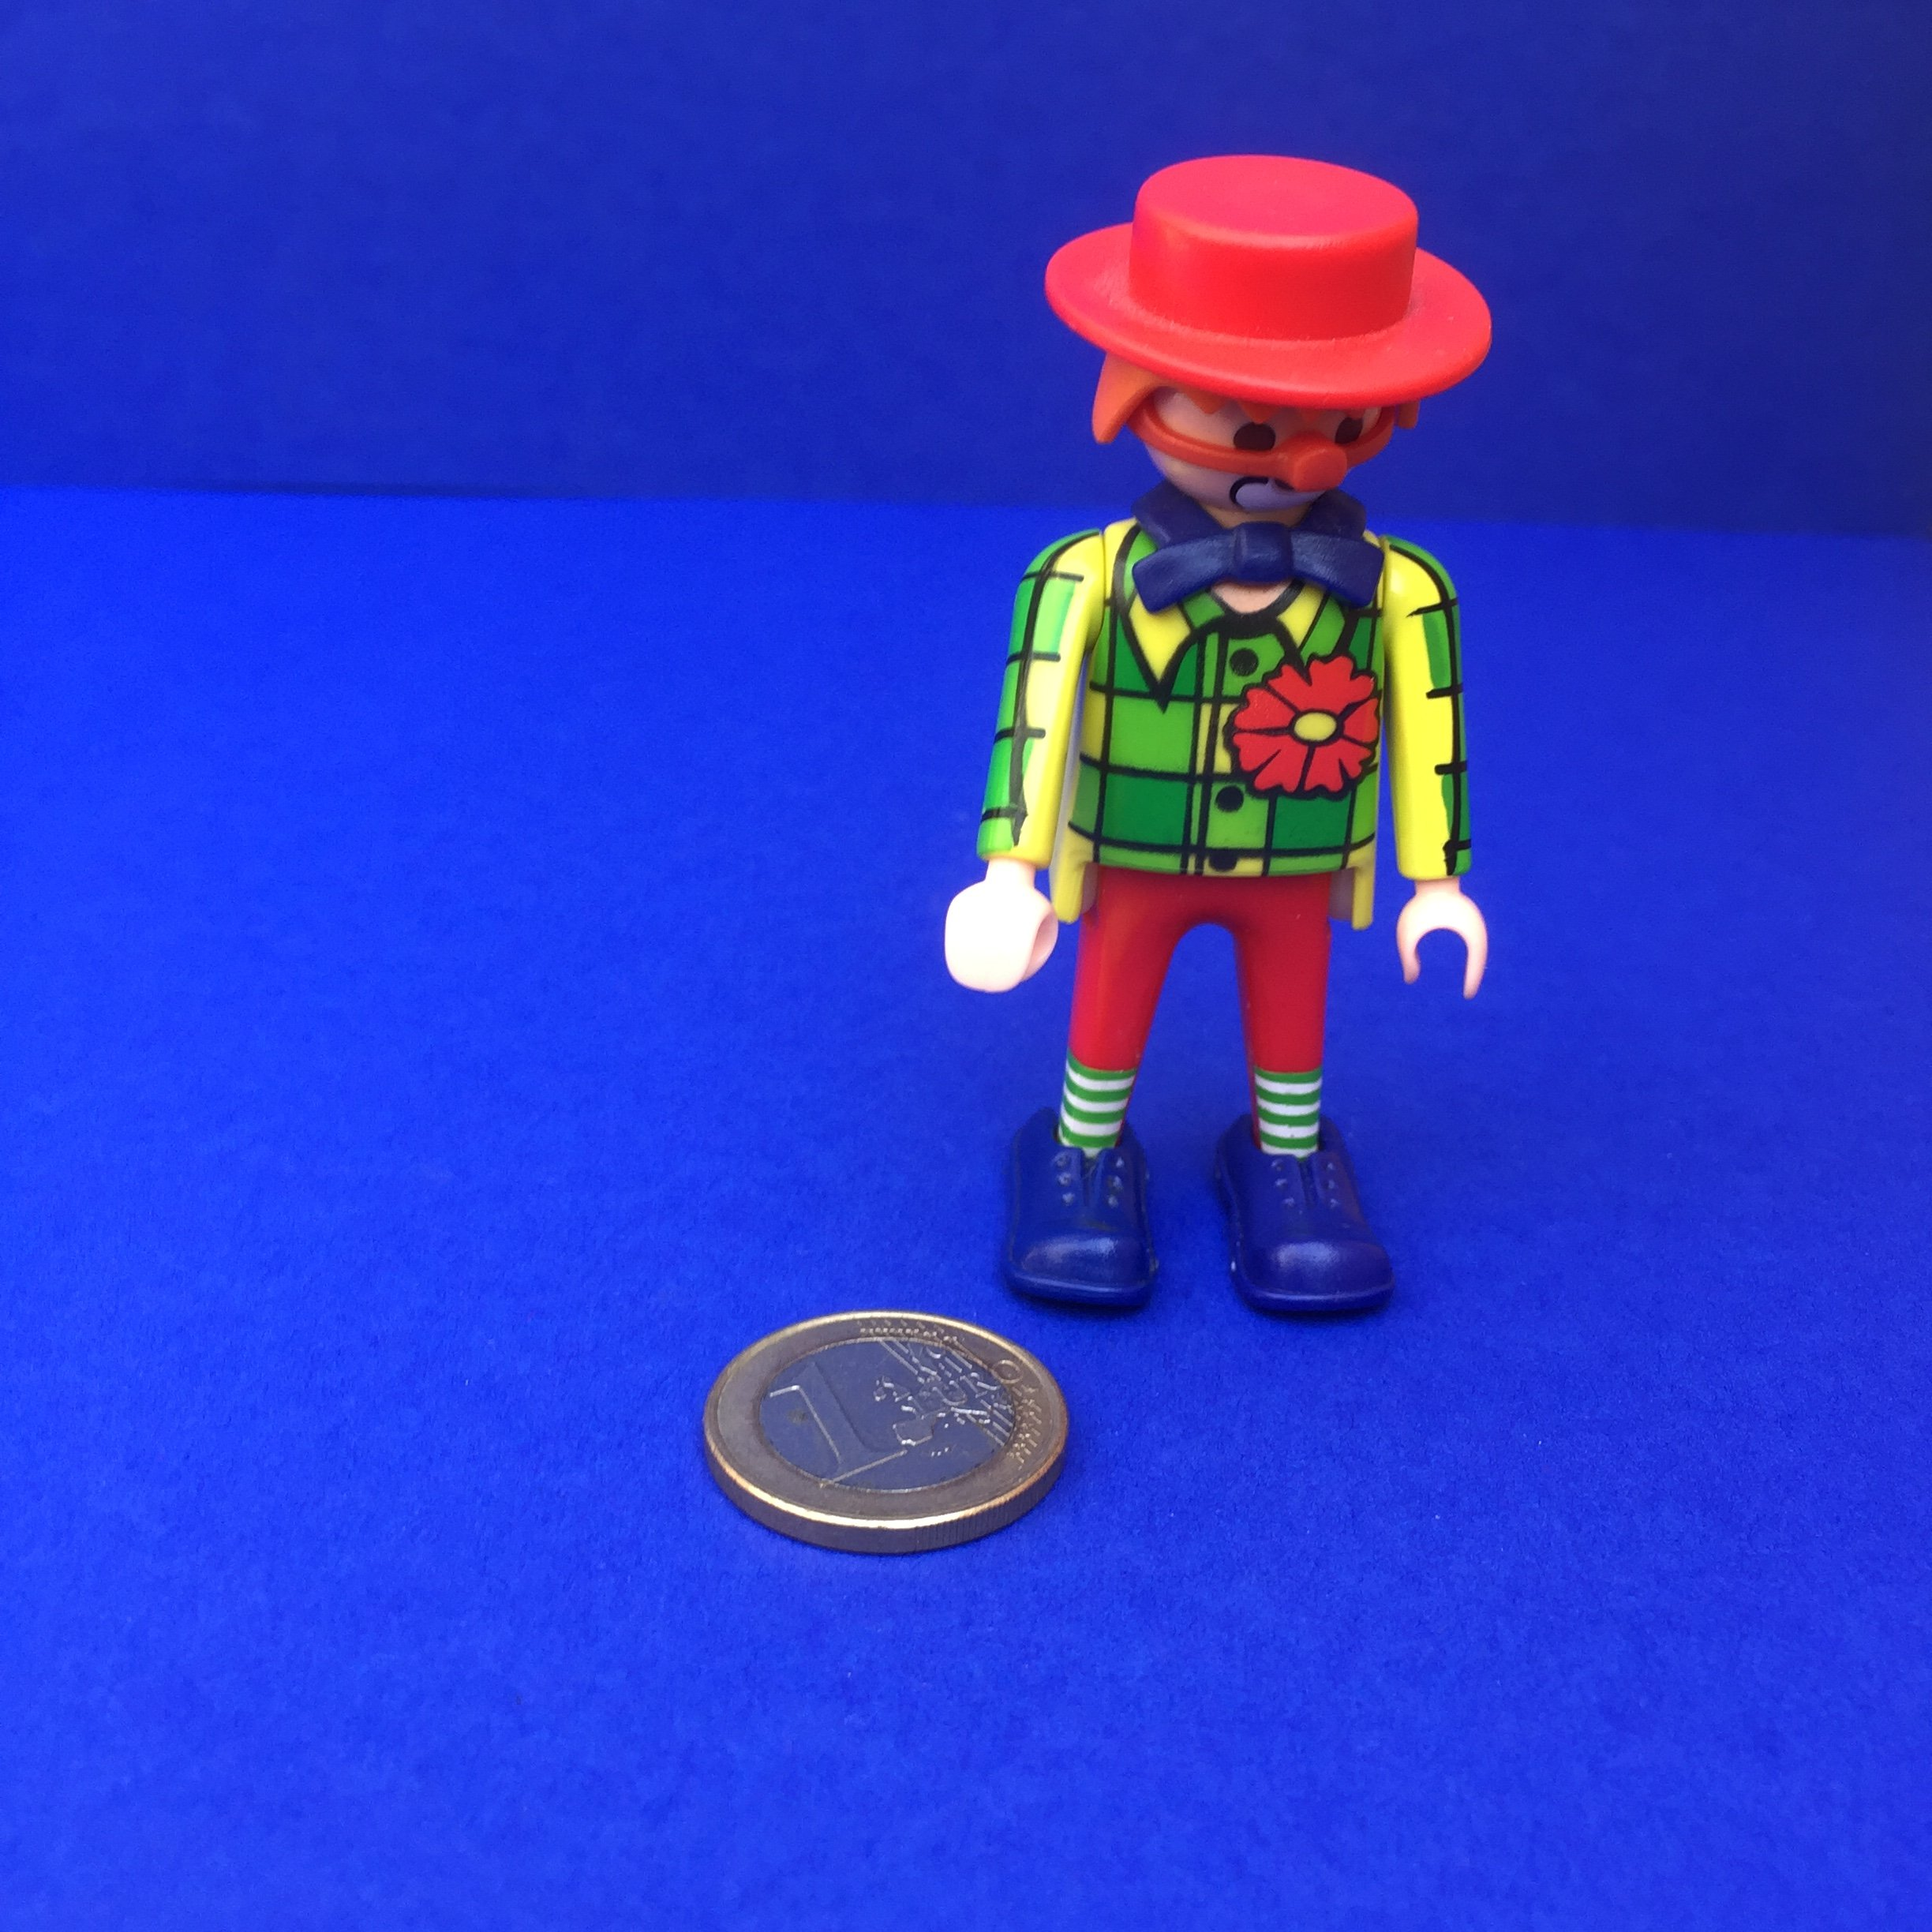 Playmobil-clown